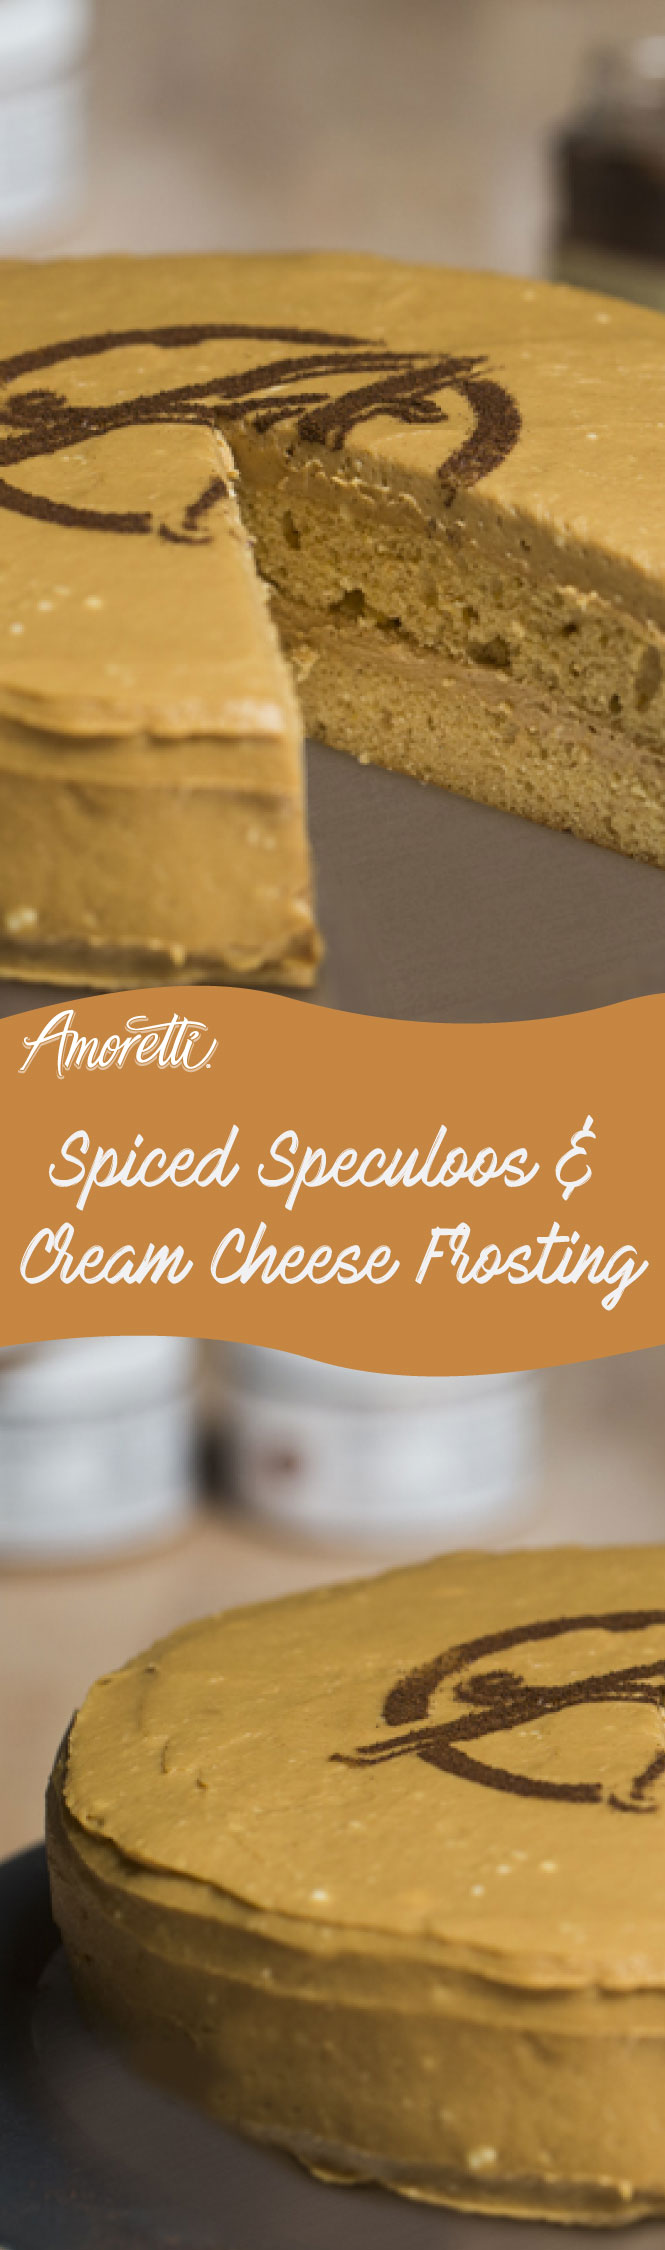 Embrace the flavors of autumn with this easy frosting!